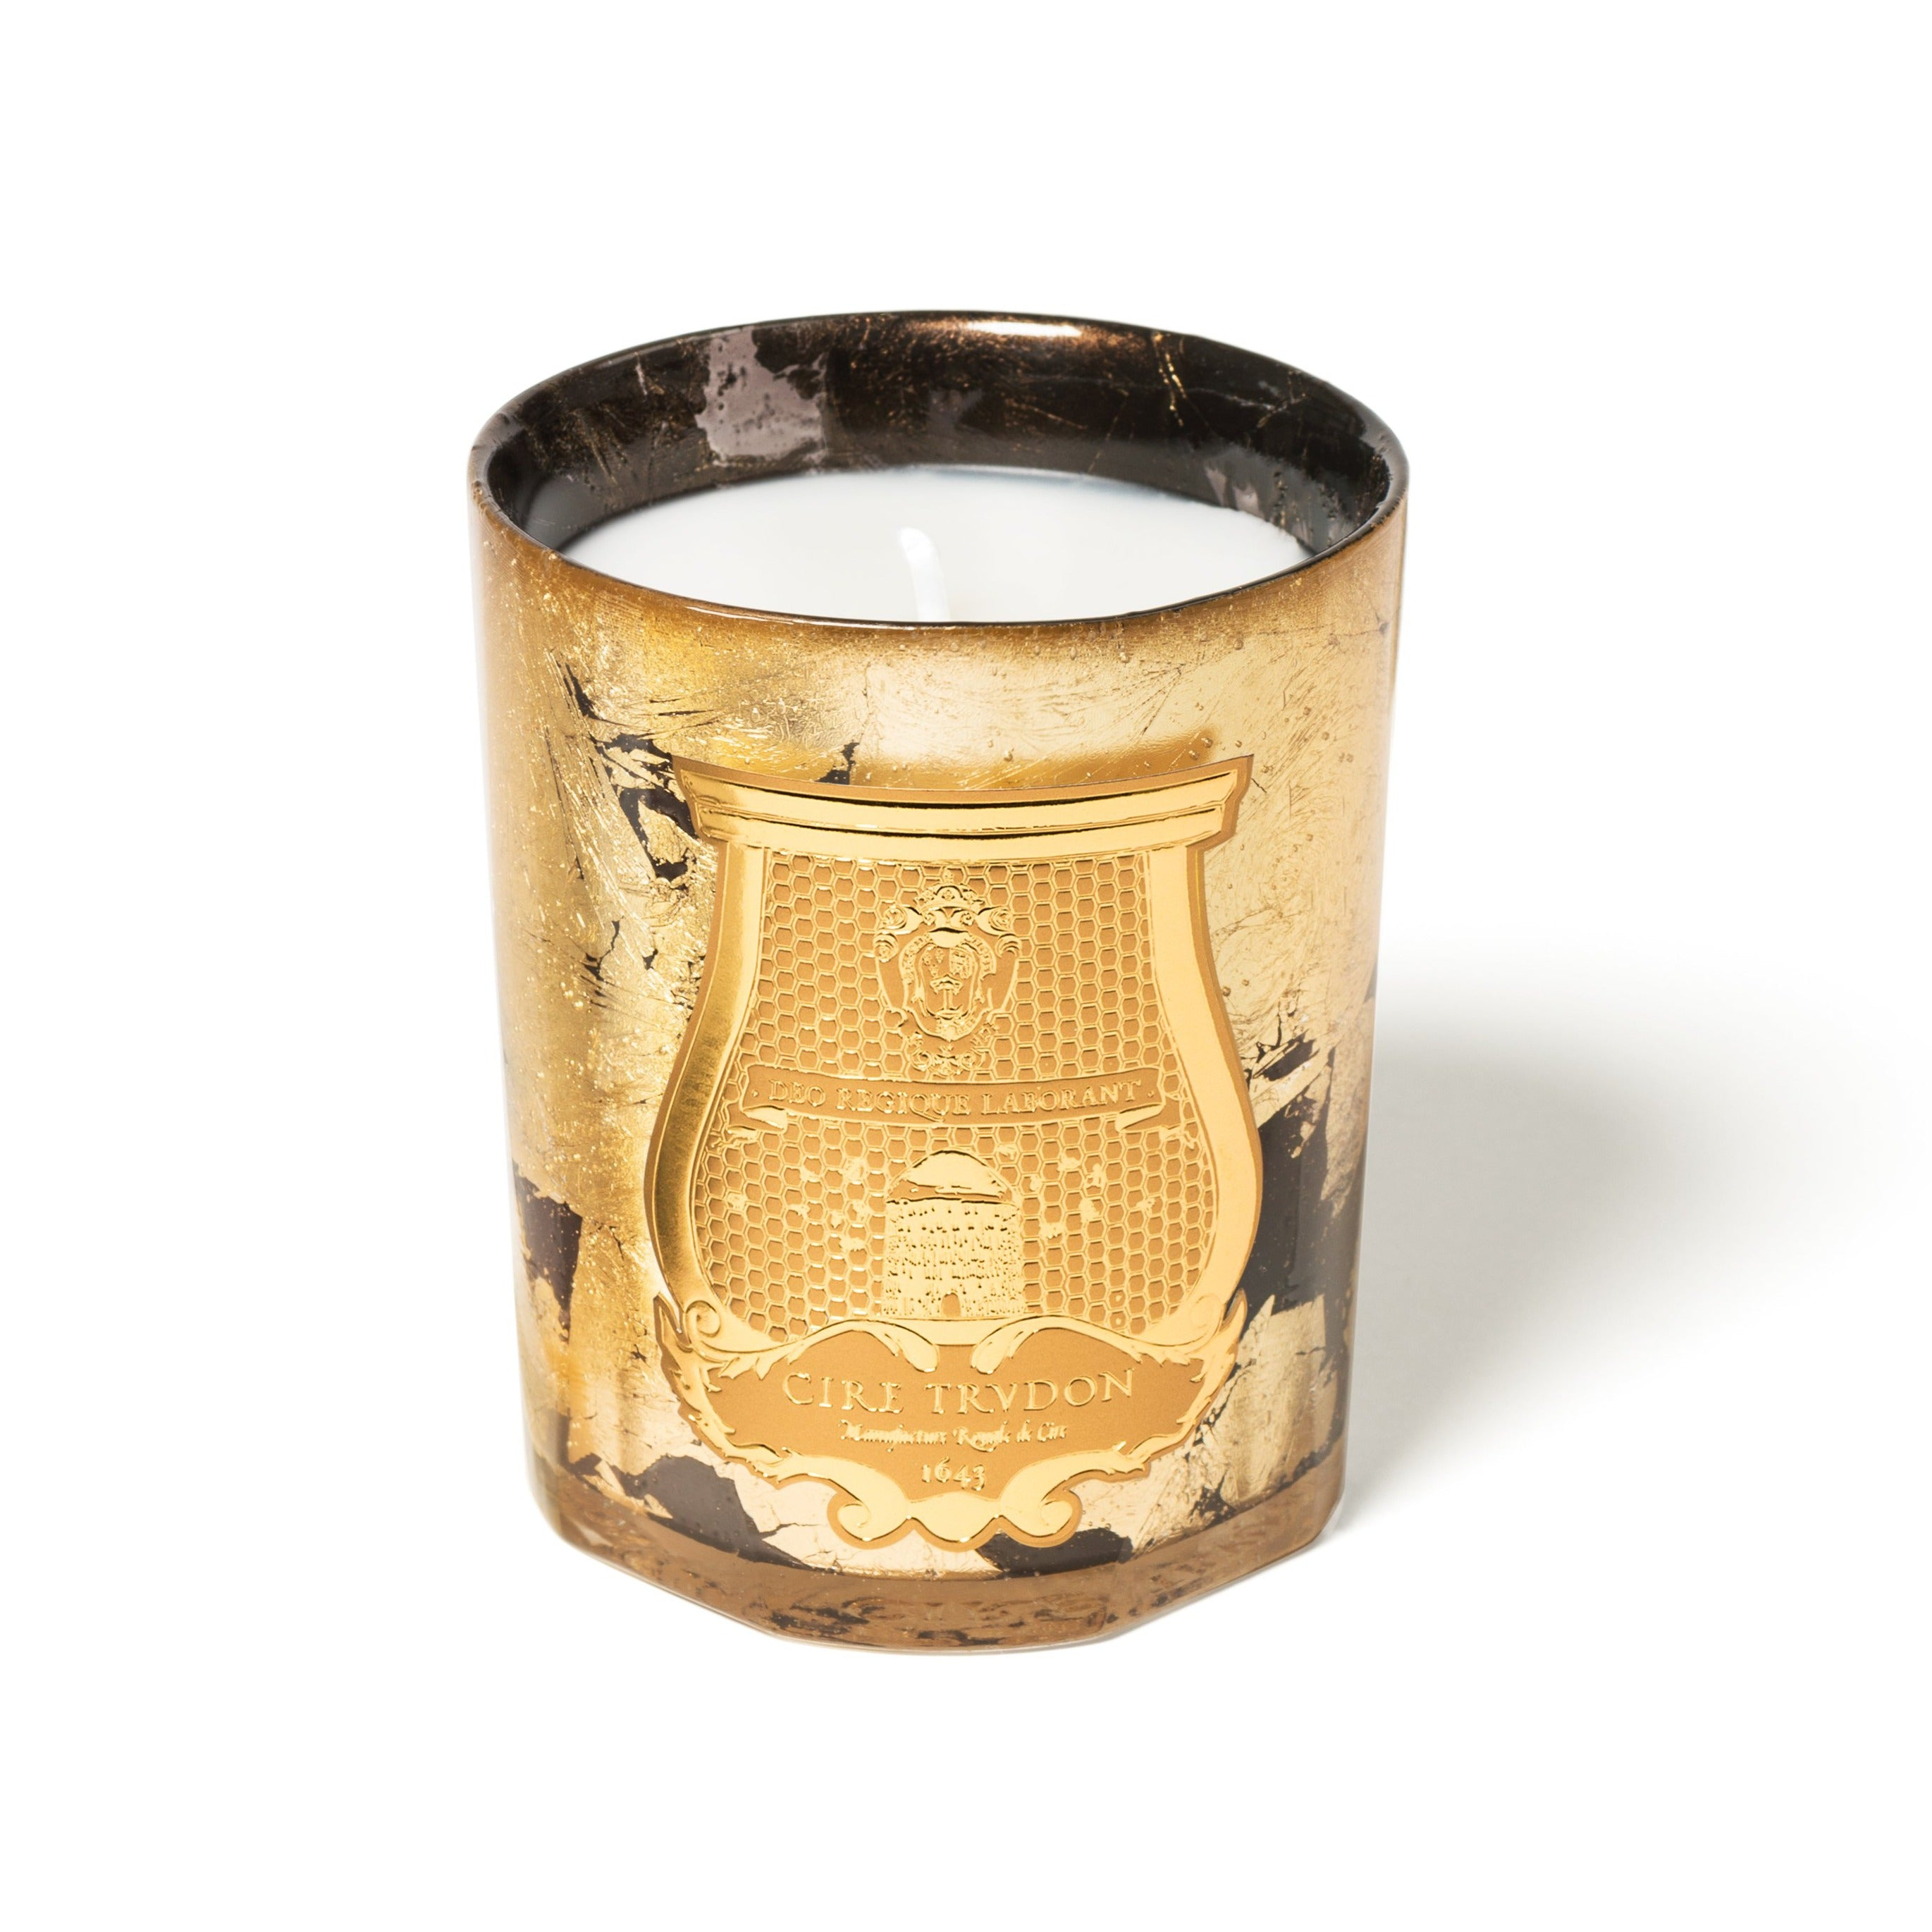 Ernesto Gold Leaf/Anthracite Christmas 2020 Intermezzo Candle (800gs) by Cire Trudon